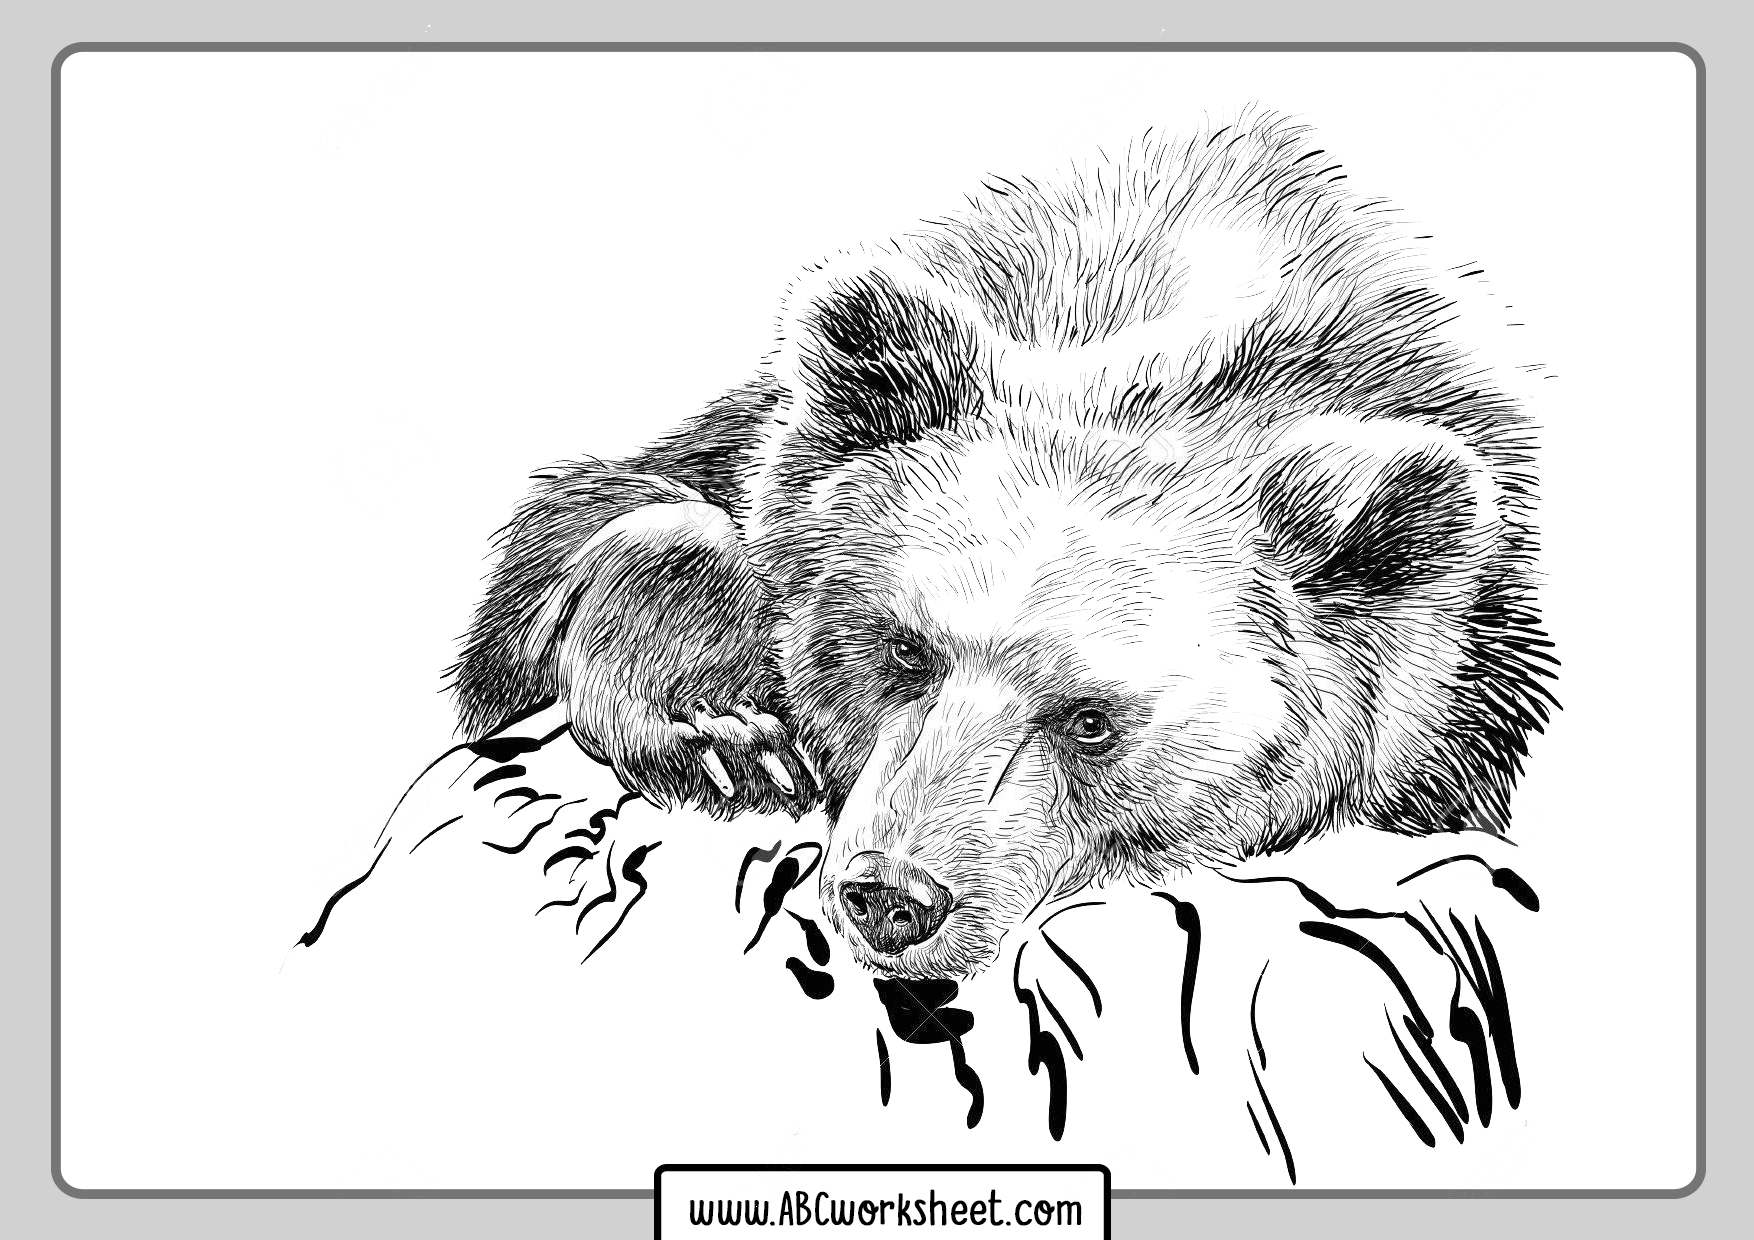 Grizzly Bear Coloring Pages